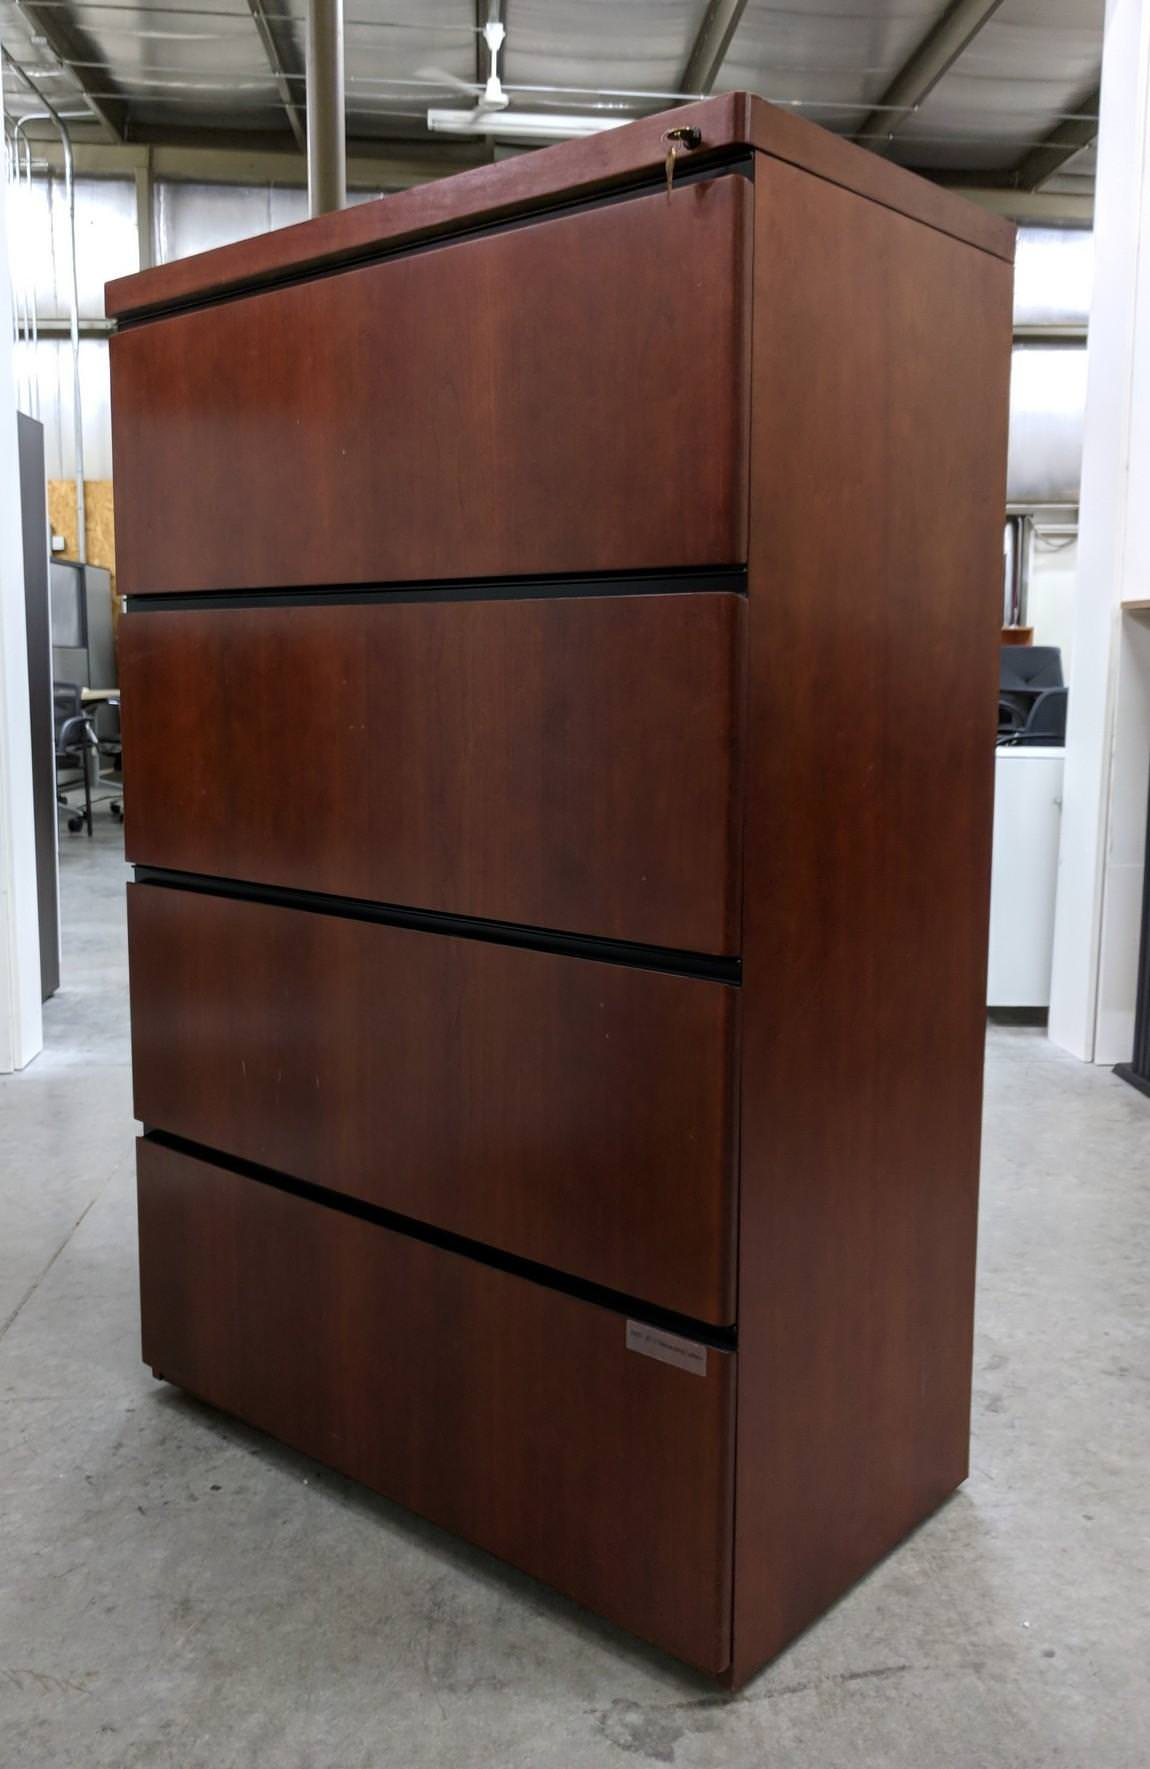 Solid Wood File Cabinet Images Solid Wood Cherry 4 Drawer Lateral Filing Cabinets 36 Inch Wide